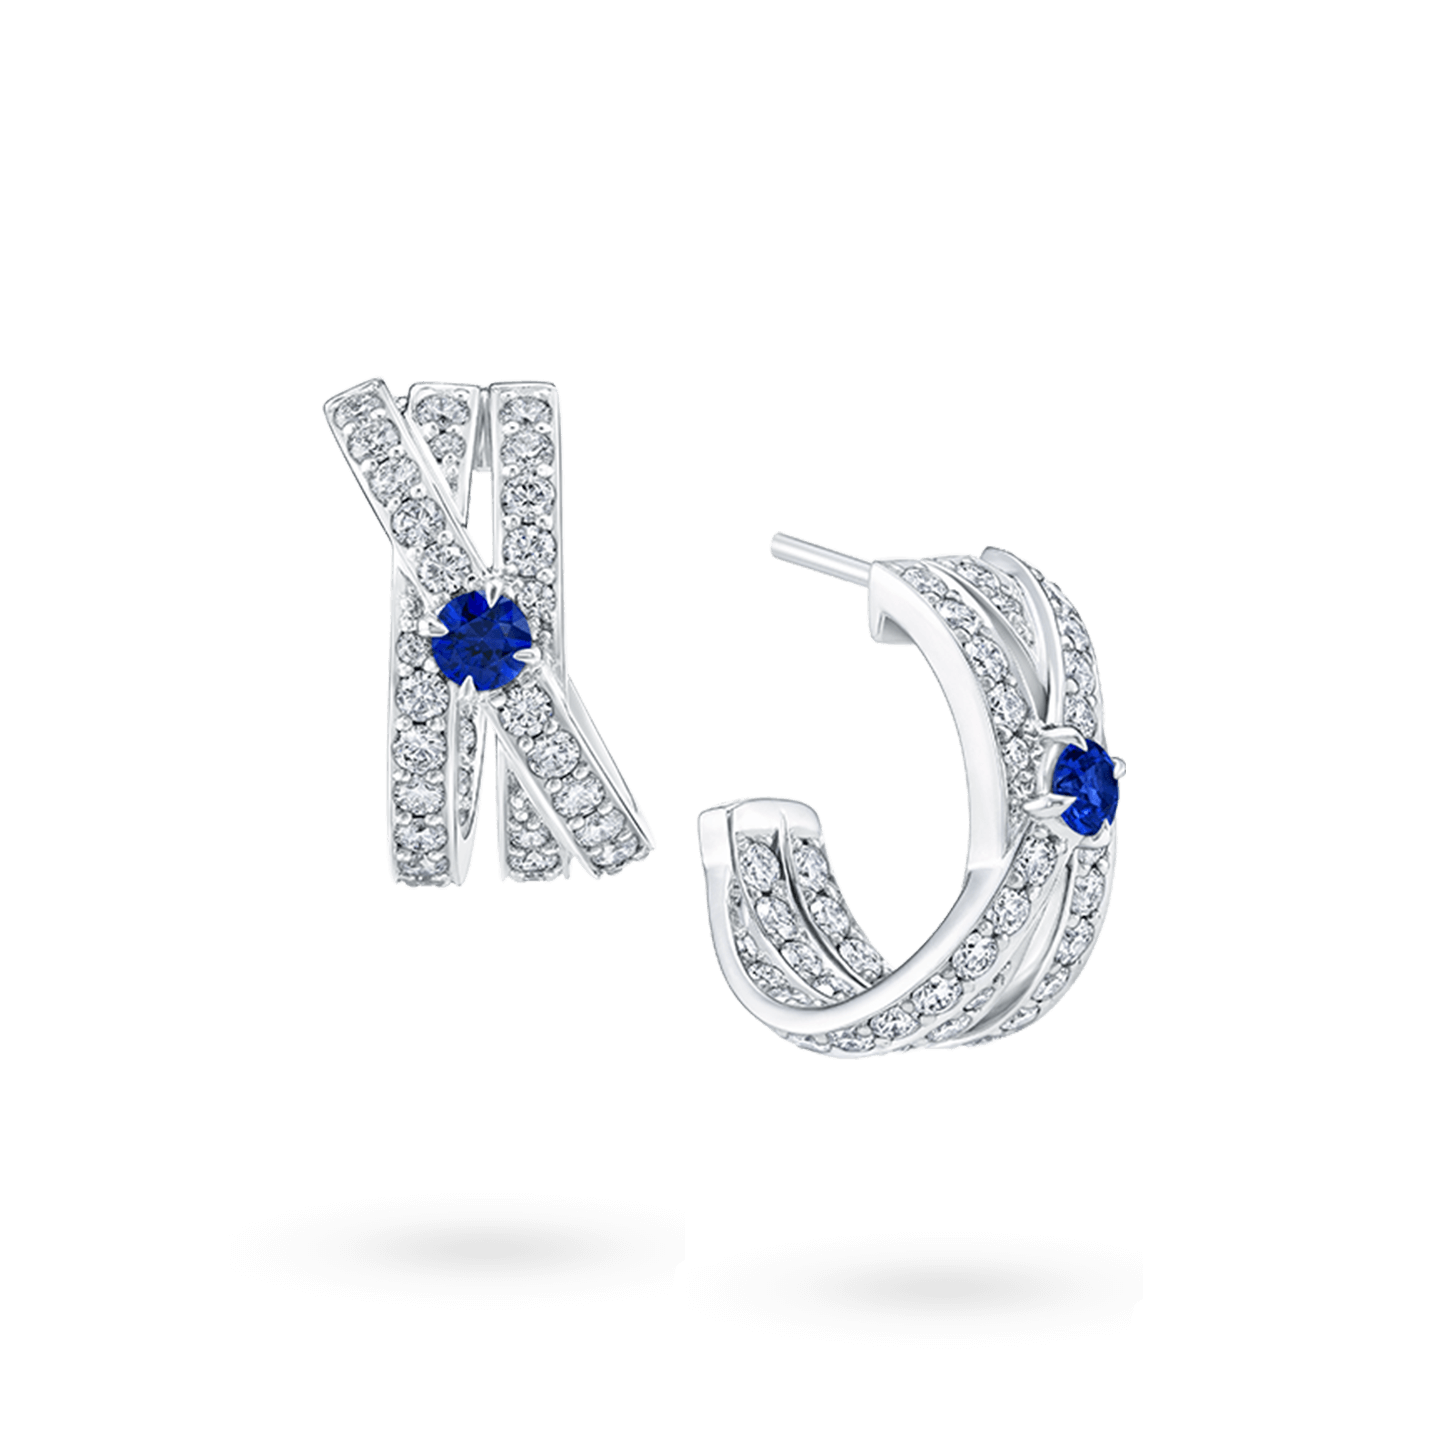 CrossoverSapphire Earrings, Product Image 2